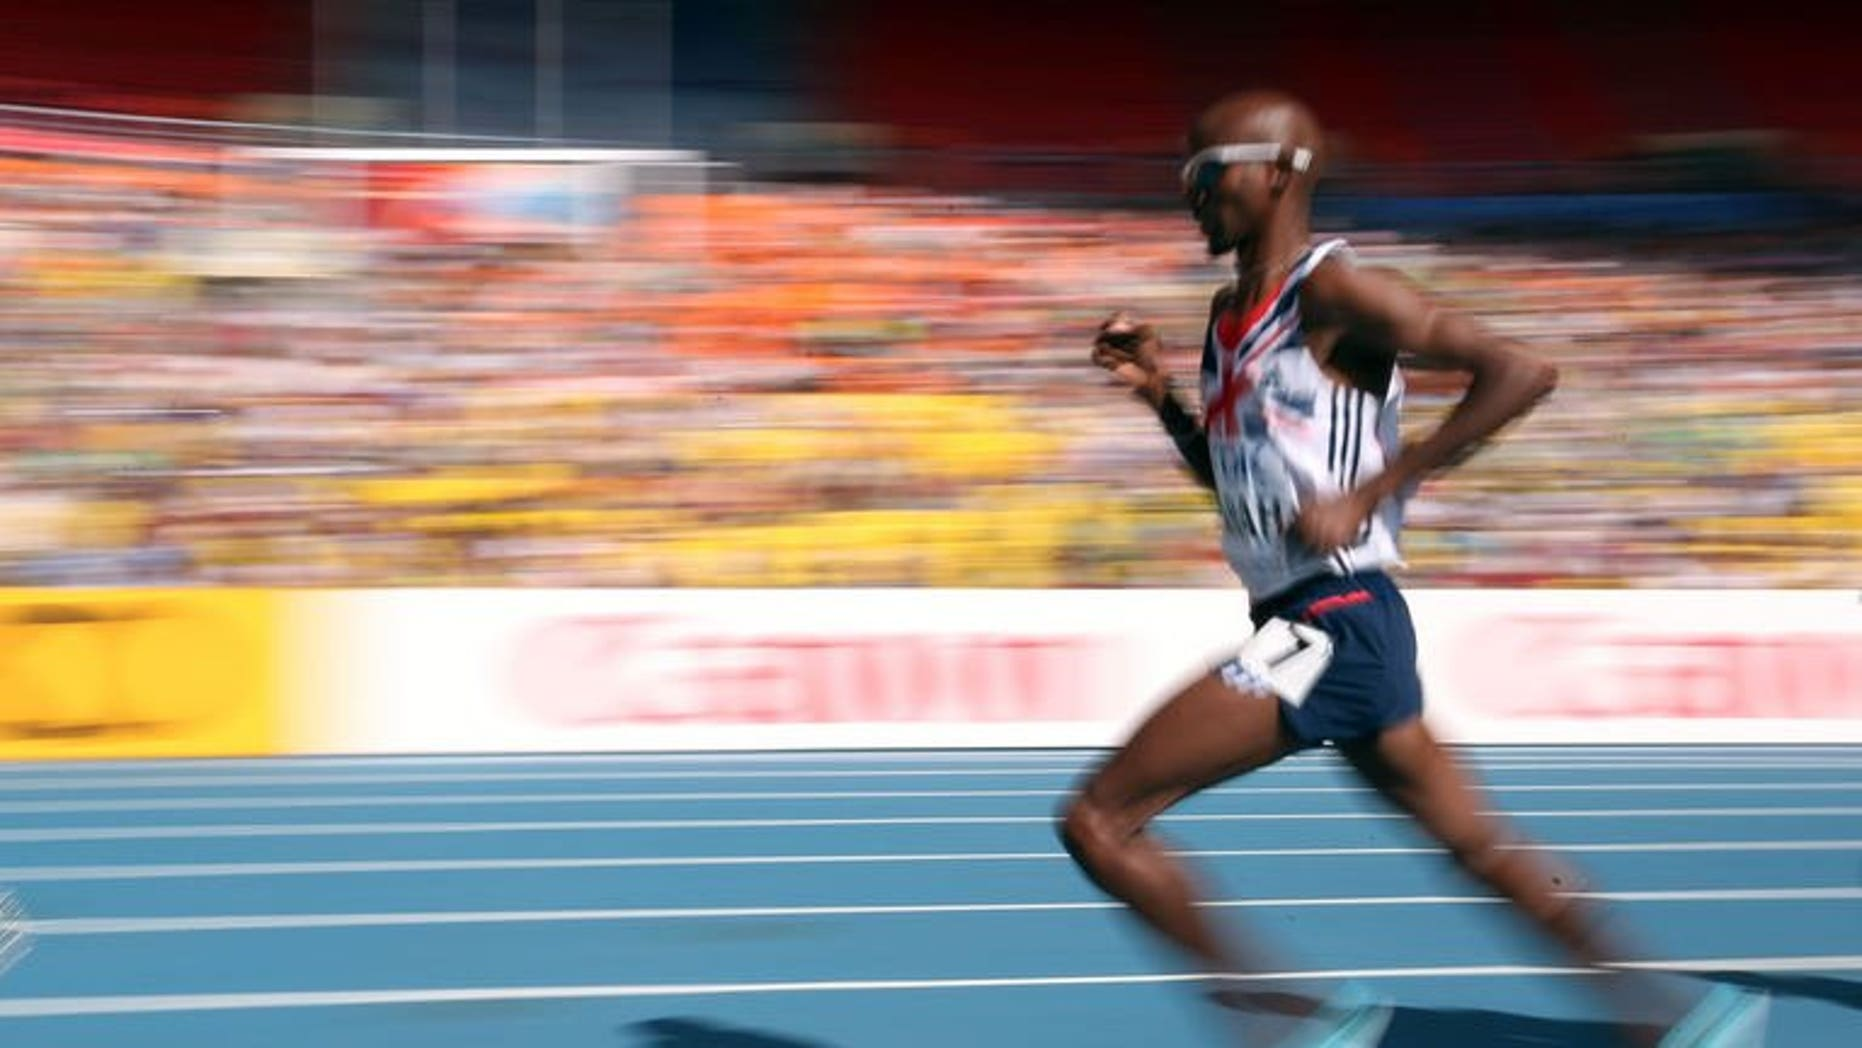 Britain's Mohamed Farah competes in Moscow on August 13, 2013. Farah added the men's 5,000m gold to his 10,000m crown at the World Athletics Championships on Friday.